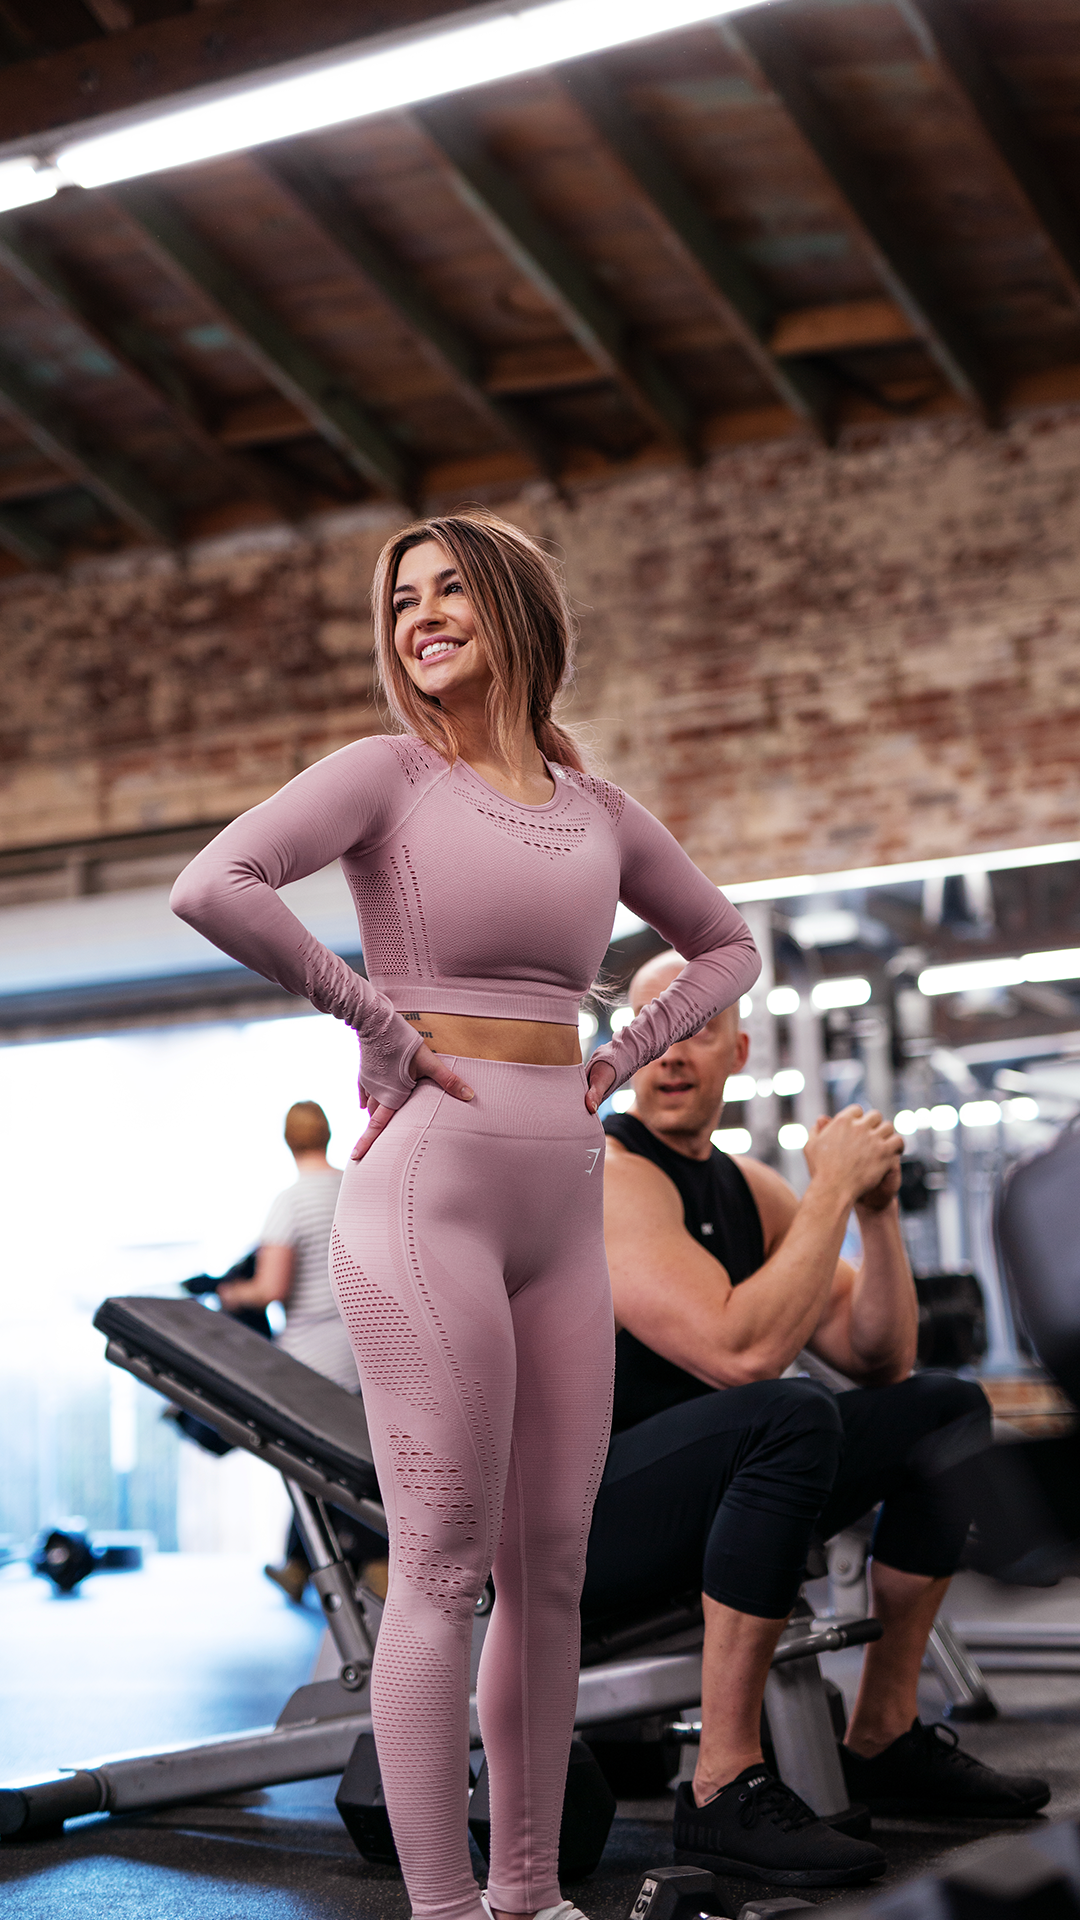 Nikki Blackketter, Gymshark Athlete, wears the Flawless Knit for her #Gymshark66 workout. What are y...